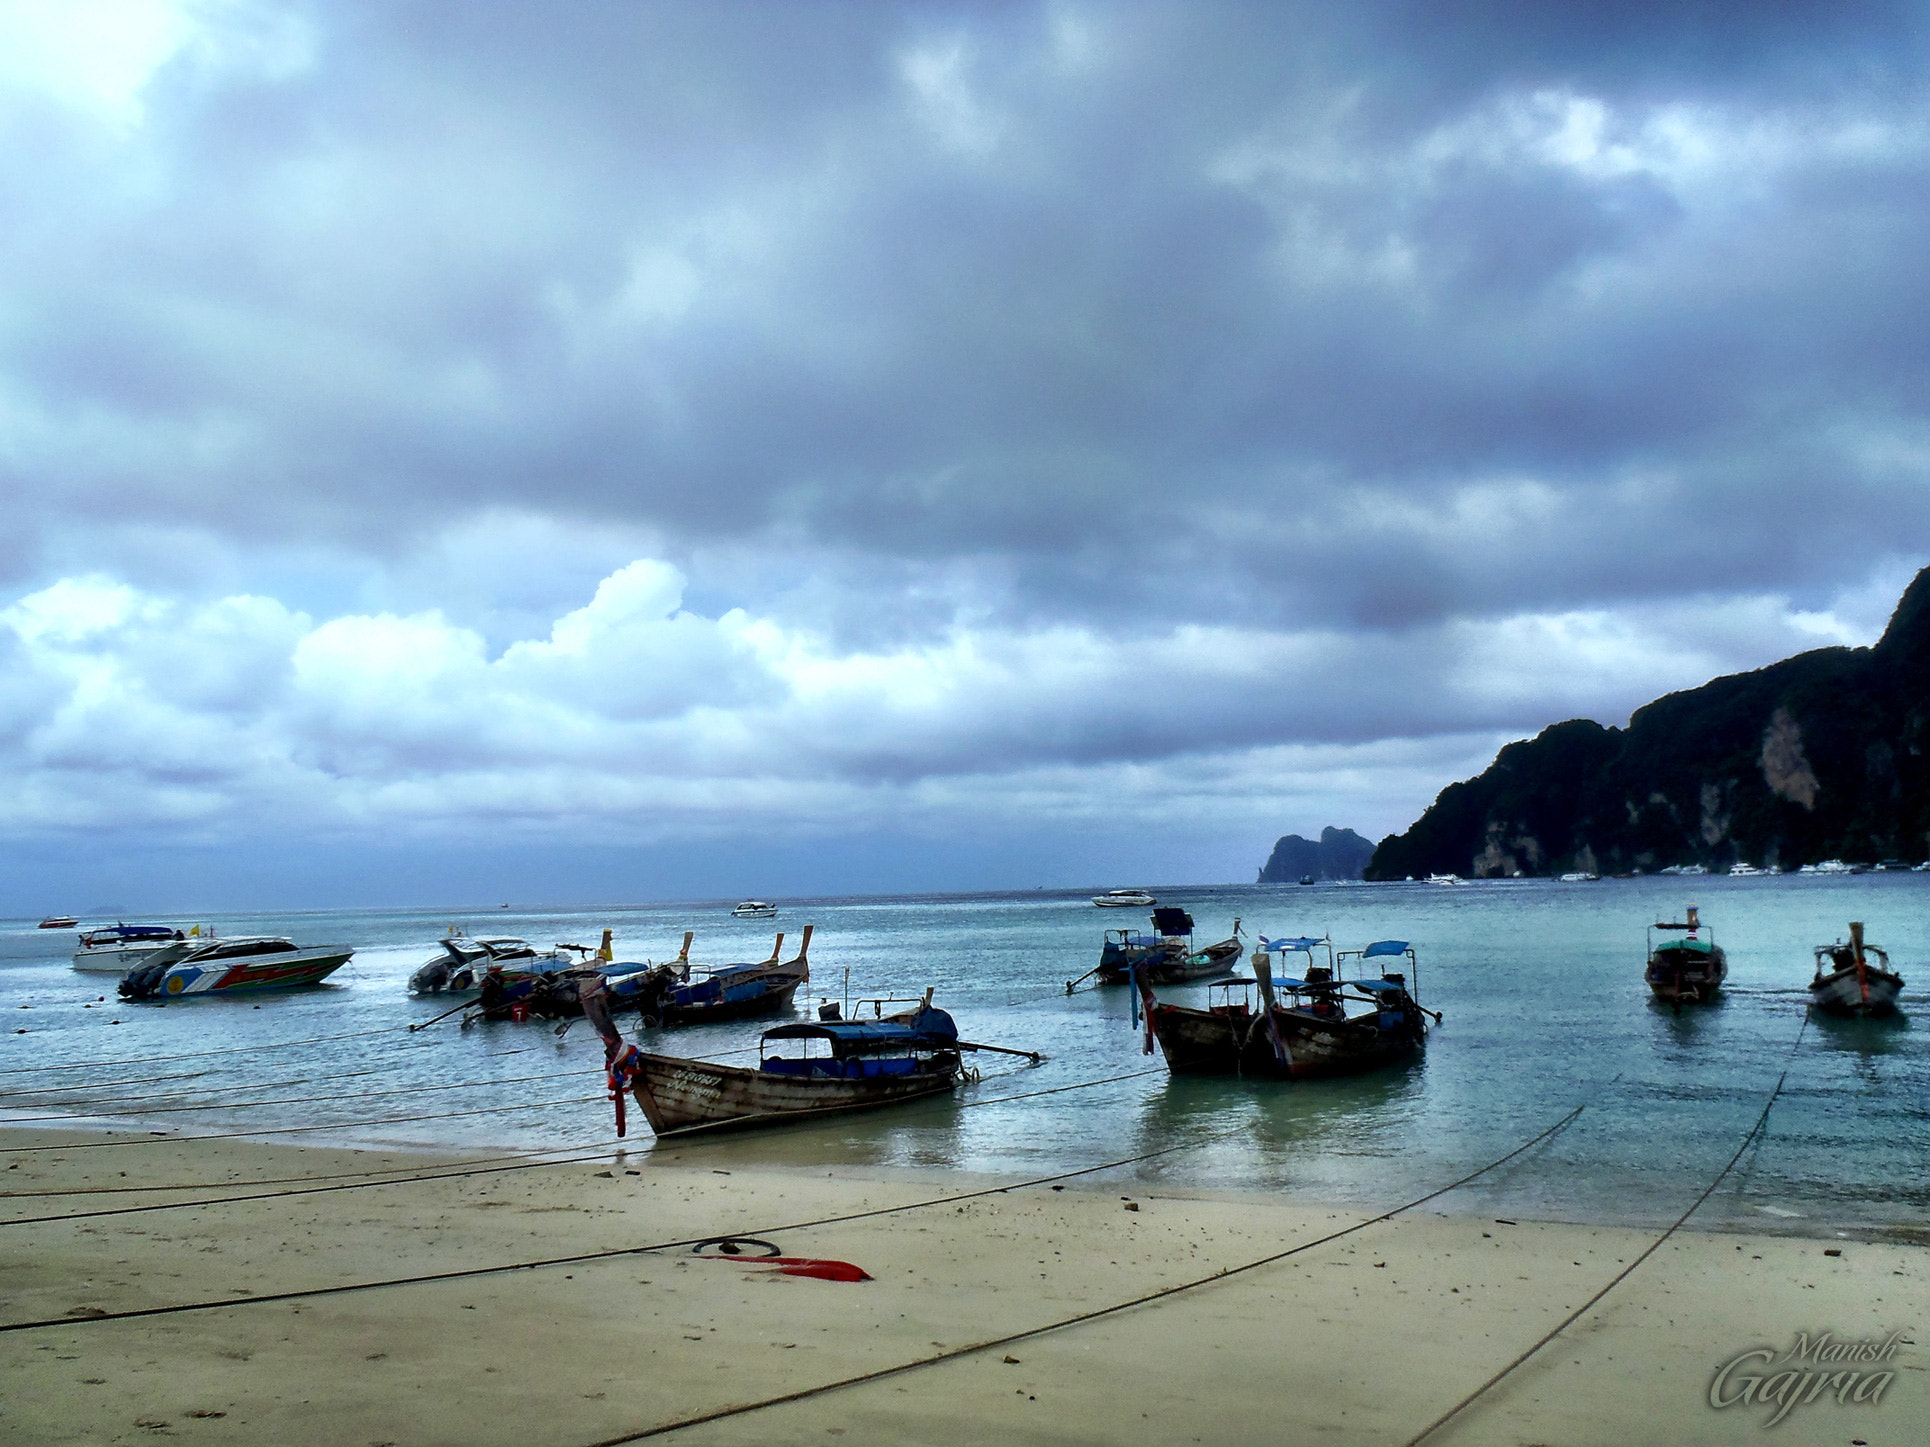 Photograph Boats at Phi Phi Island, Thailand by Manish Gajria on 500px